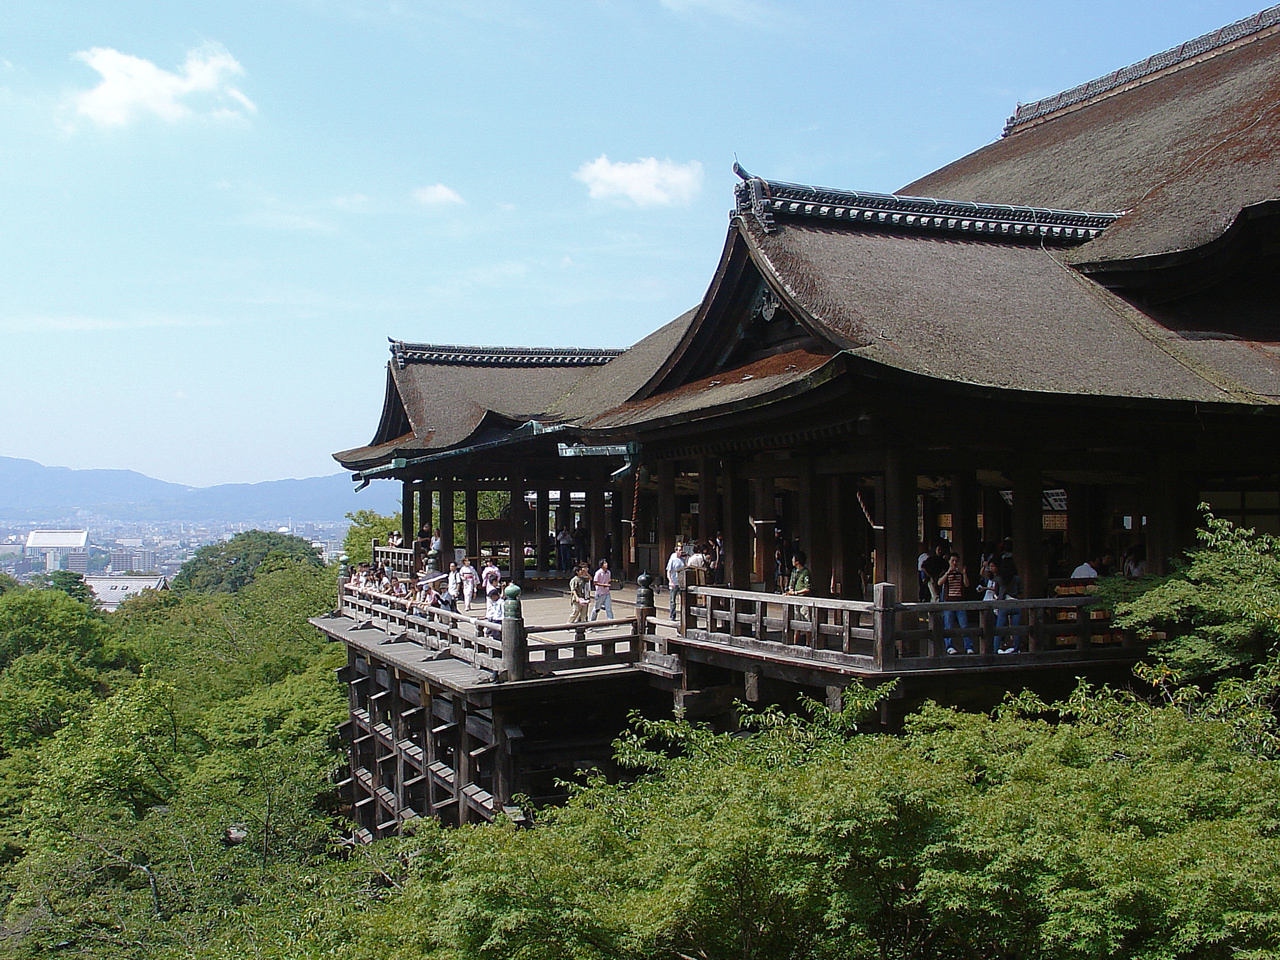 https://upload.wikimedia.org/wikipedia/commons/3/35/Kiyomizu_Temple_-_01.jpg